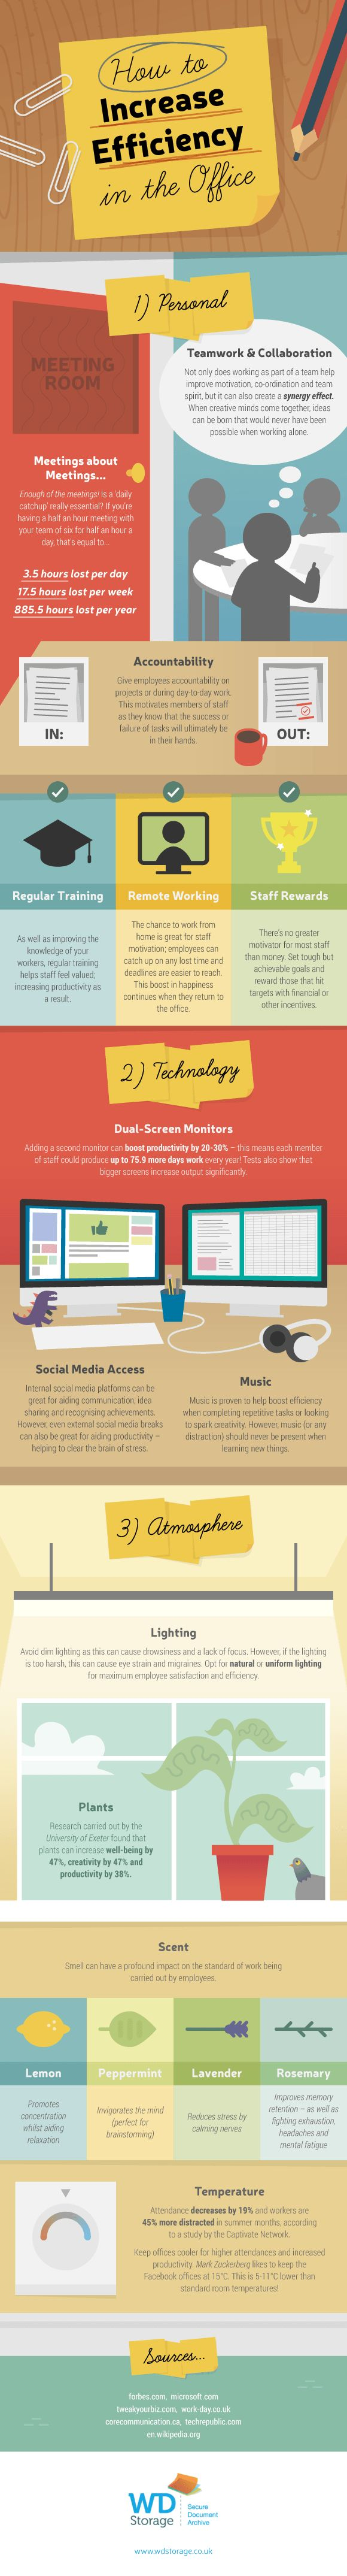 How to Increase Efficiency in the Office #infographic